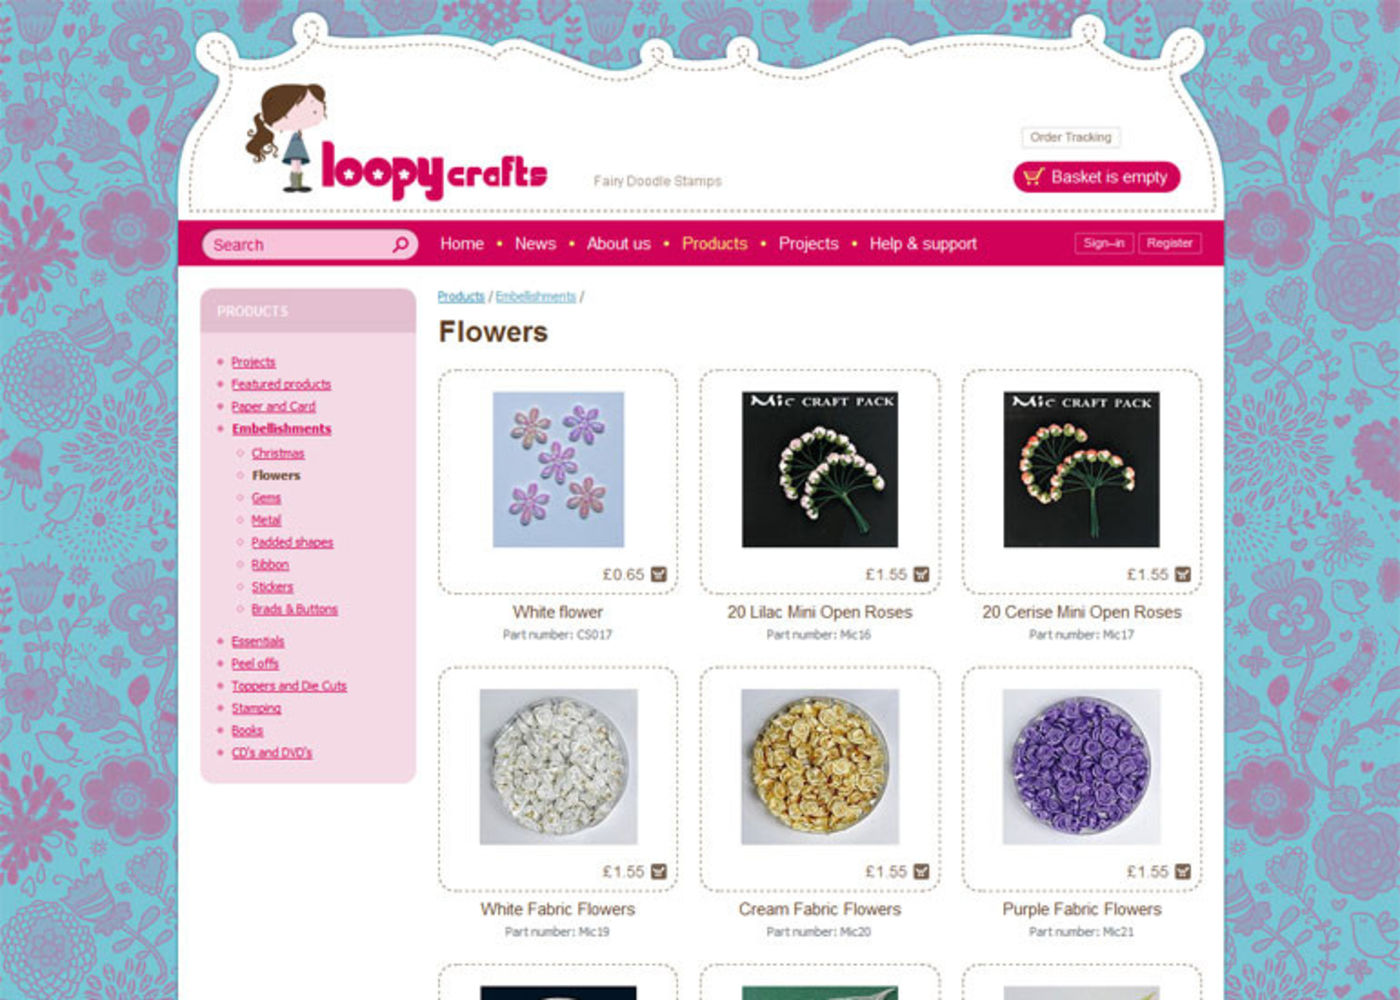 Loopy Crafts Products